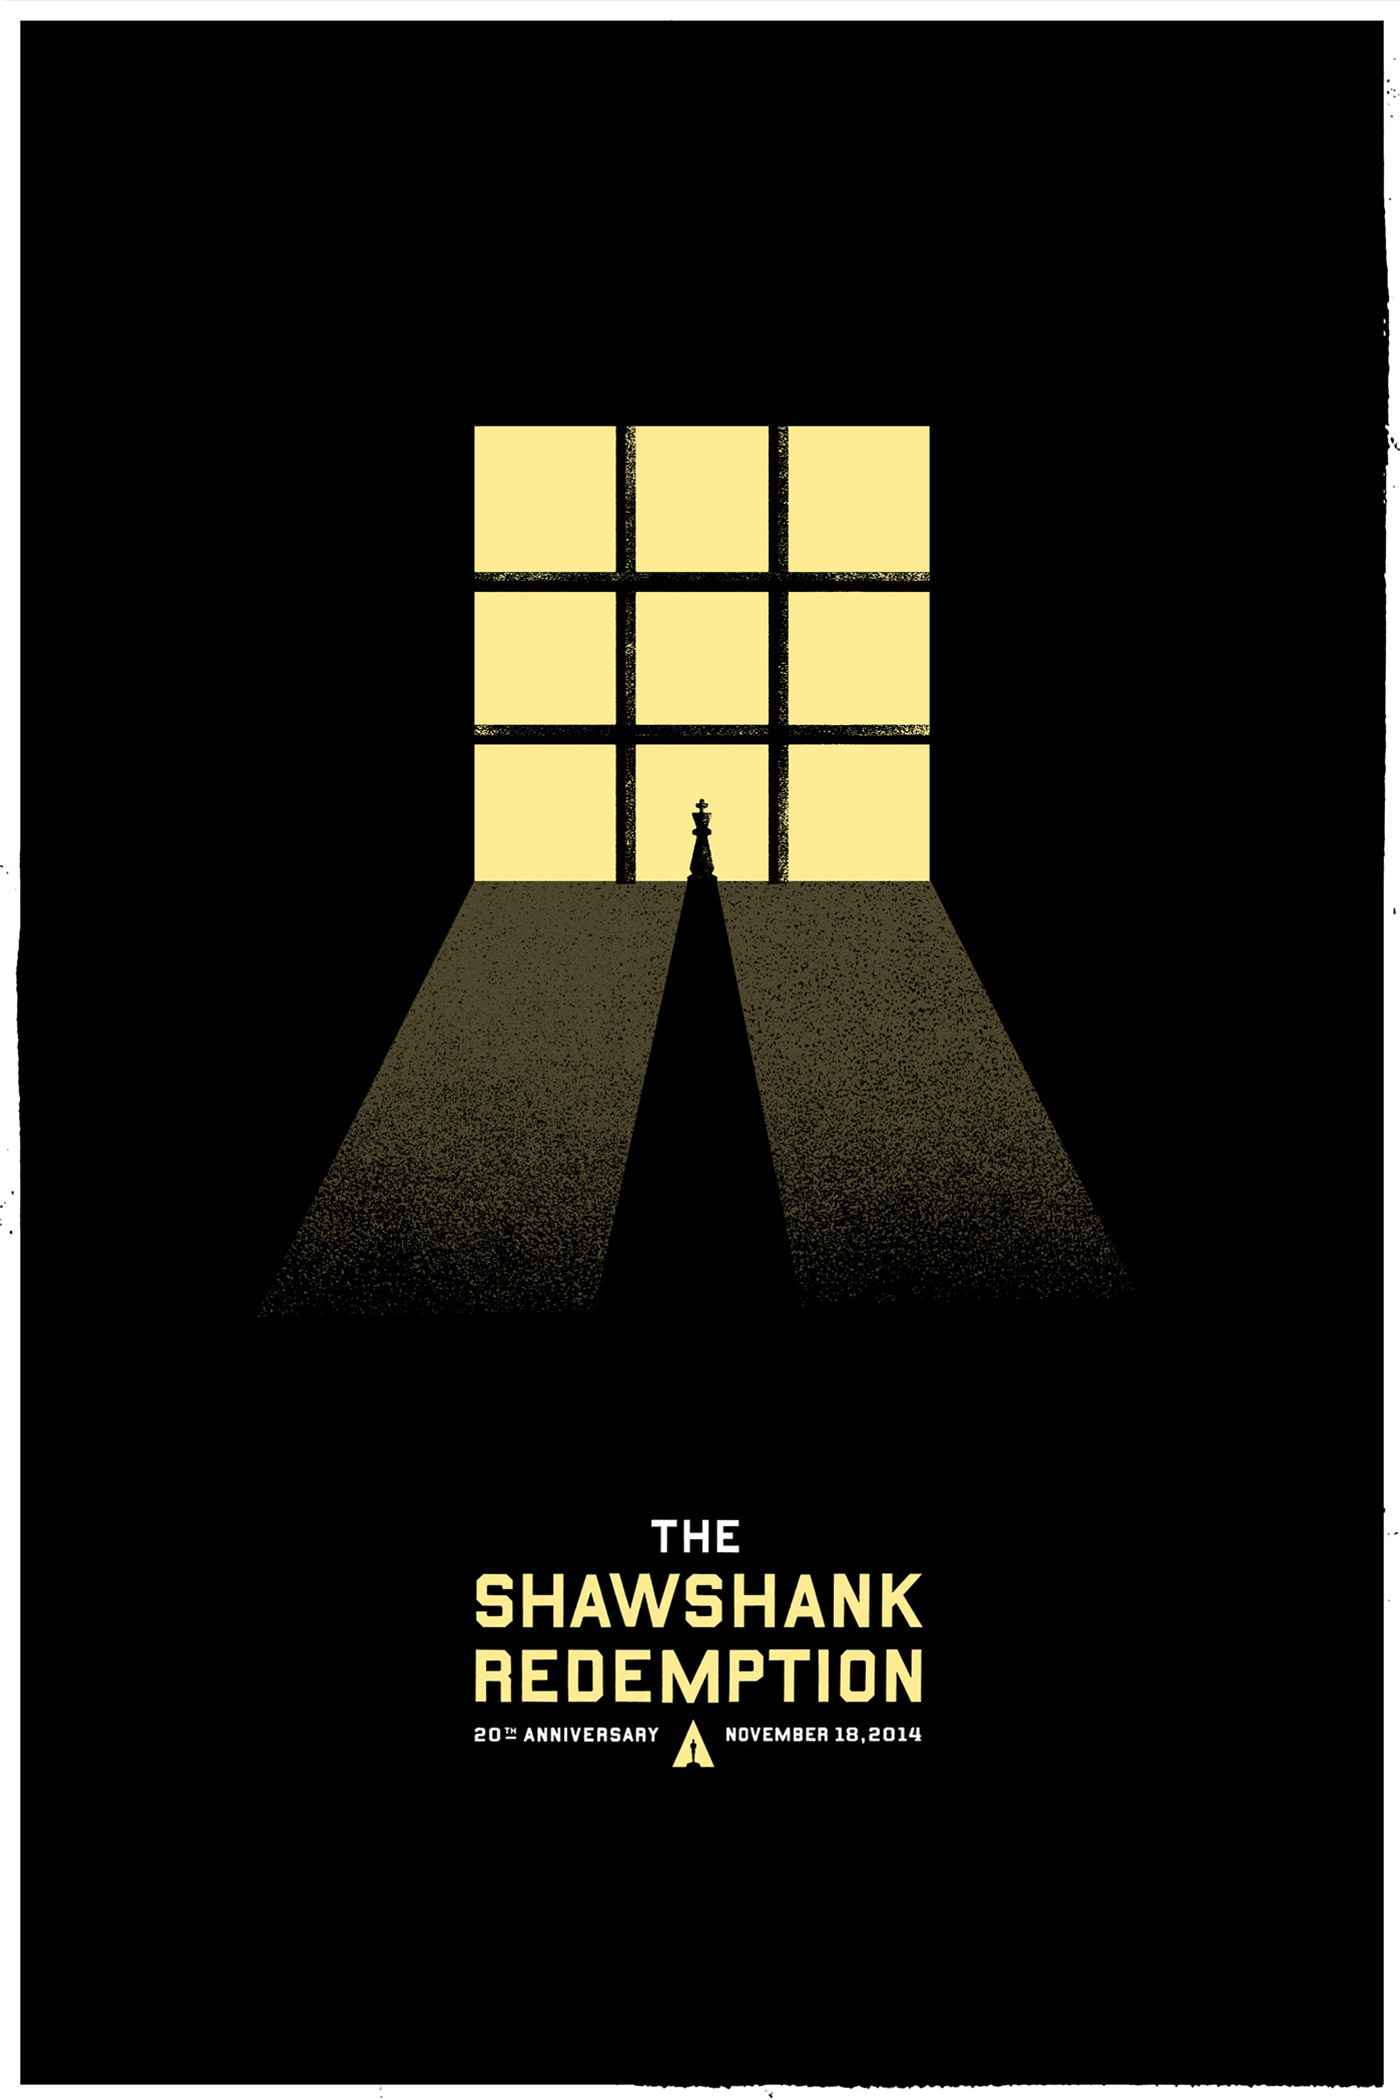 Shawshank Redemption Poster - The Heads of State